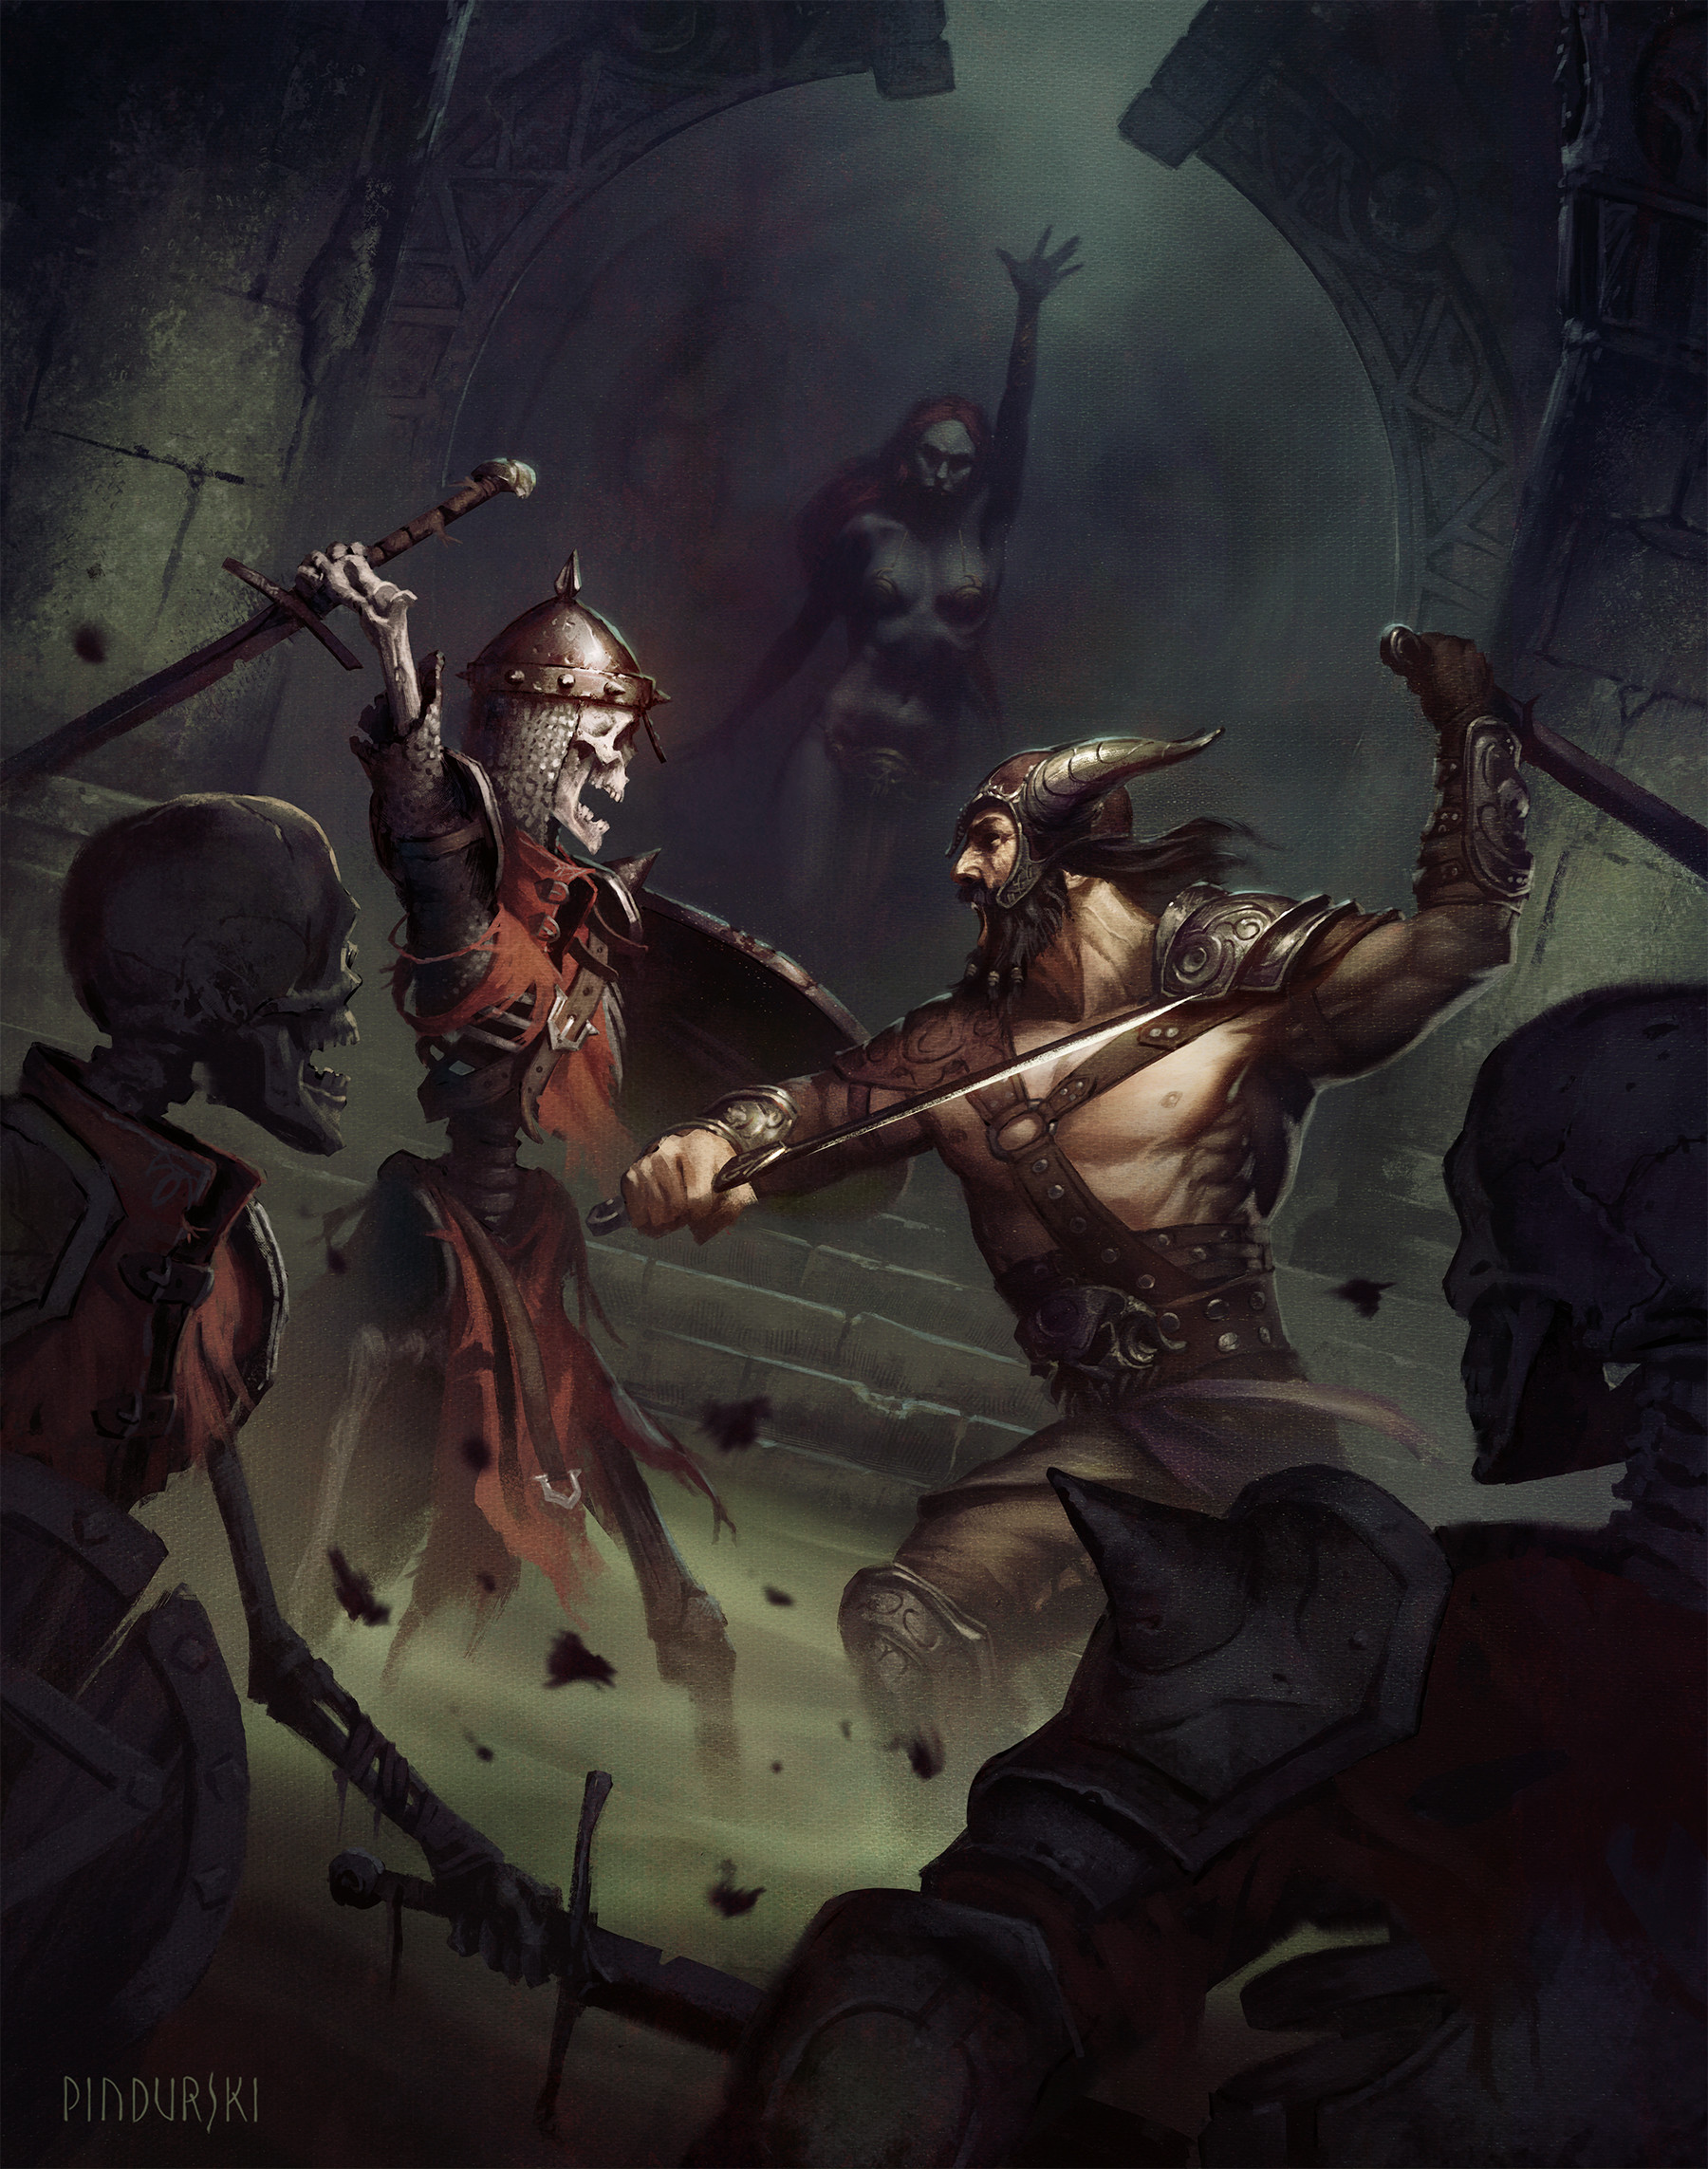 A little dungeon scuffle